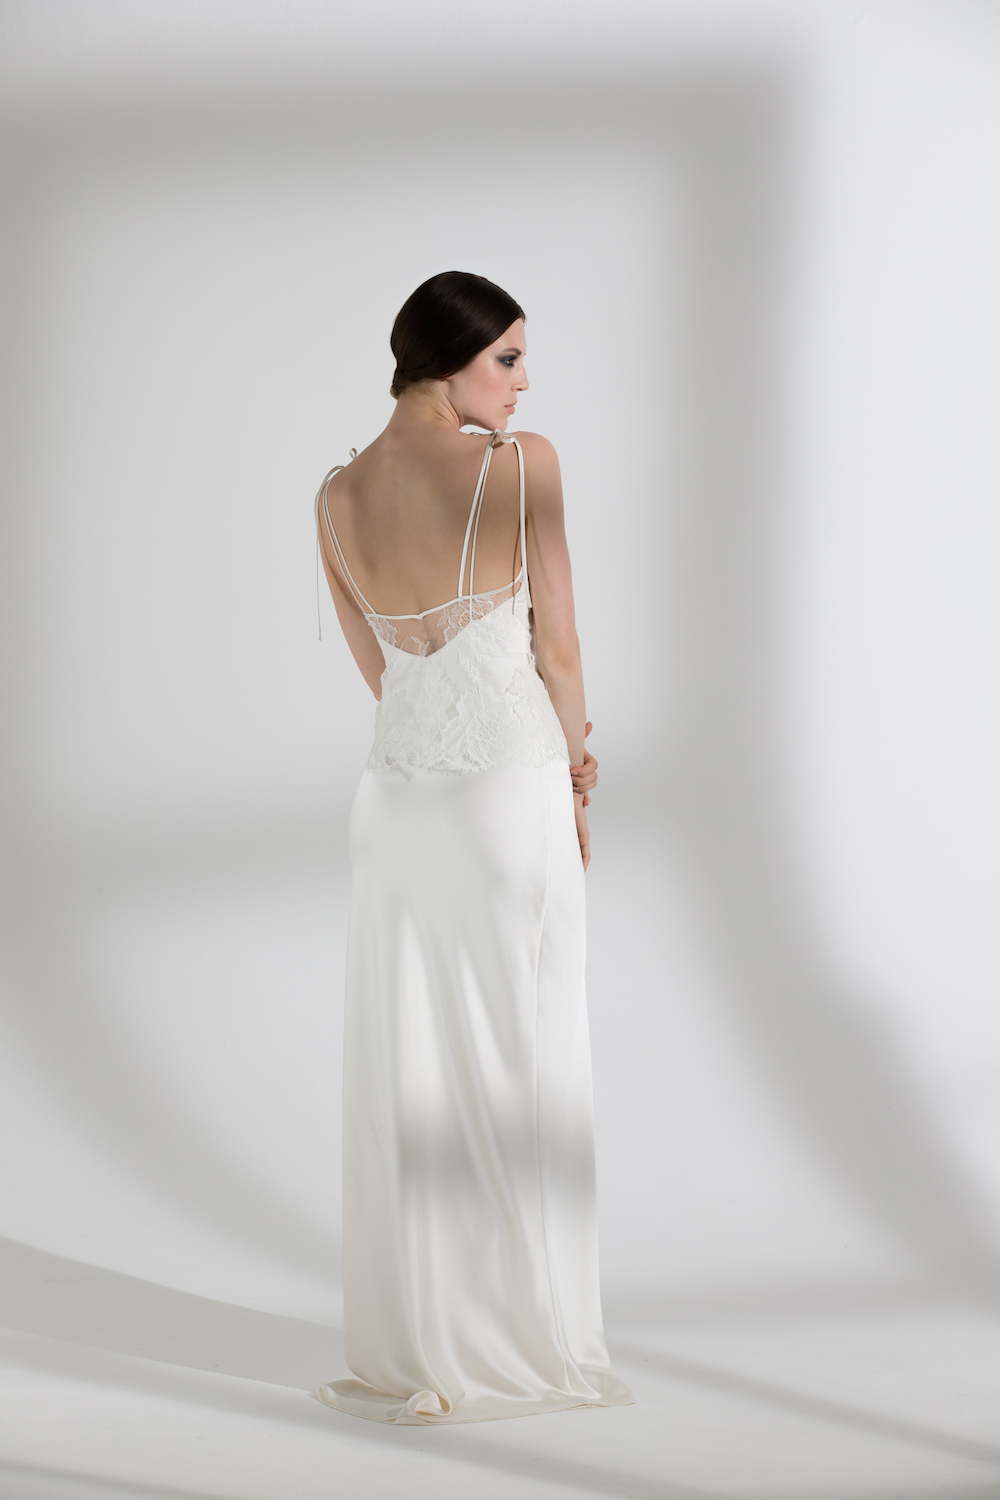 HEATHER TOP & IRIS SLIP | WEDDING DRESS BY HALFPENNY LONDON